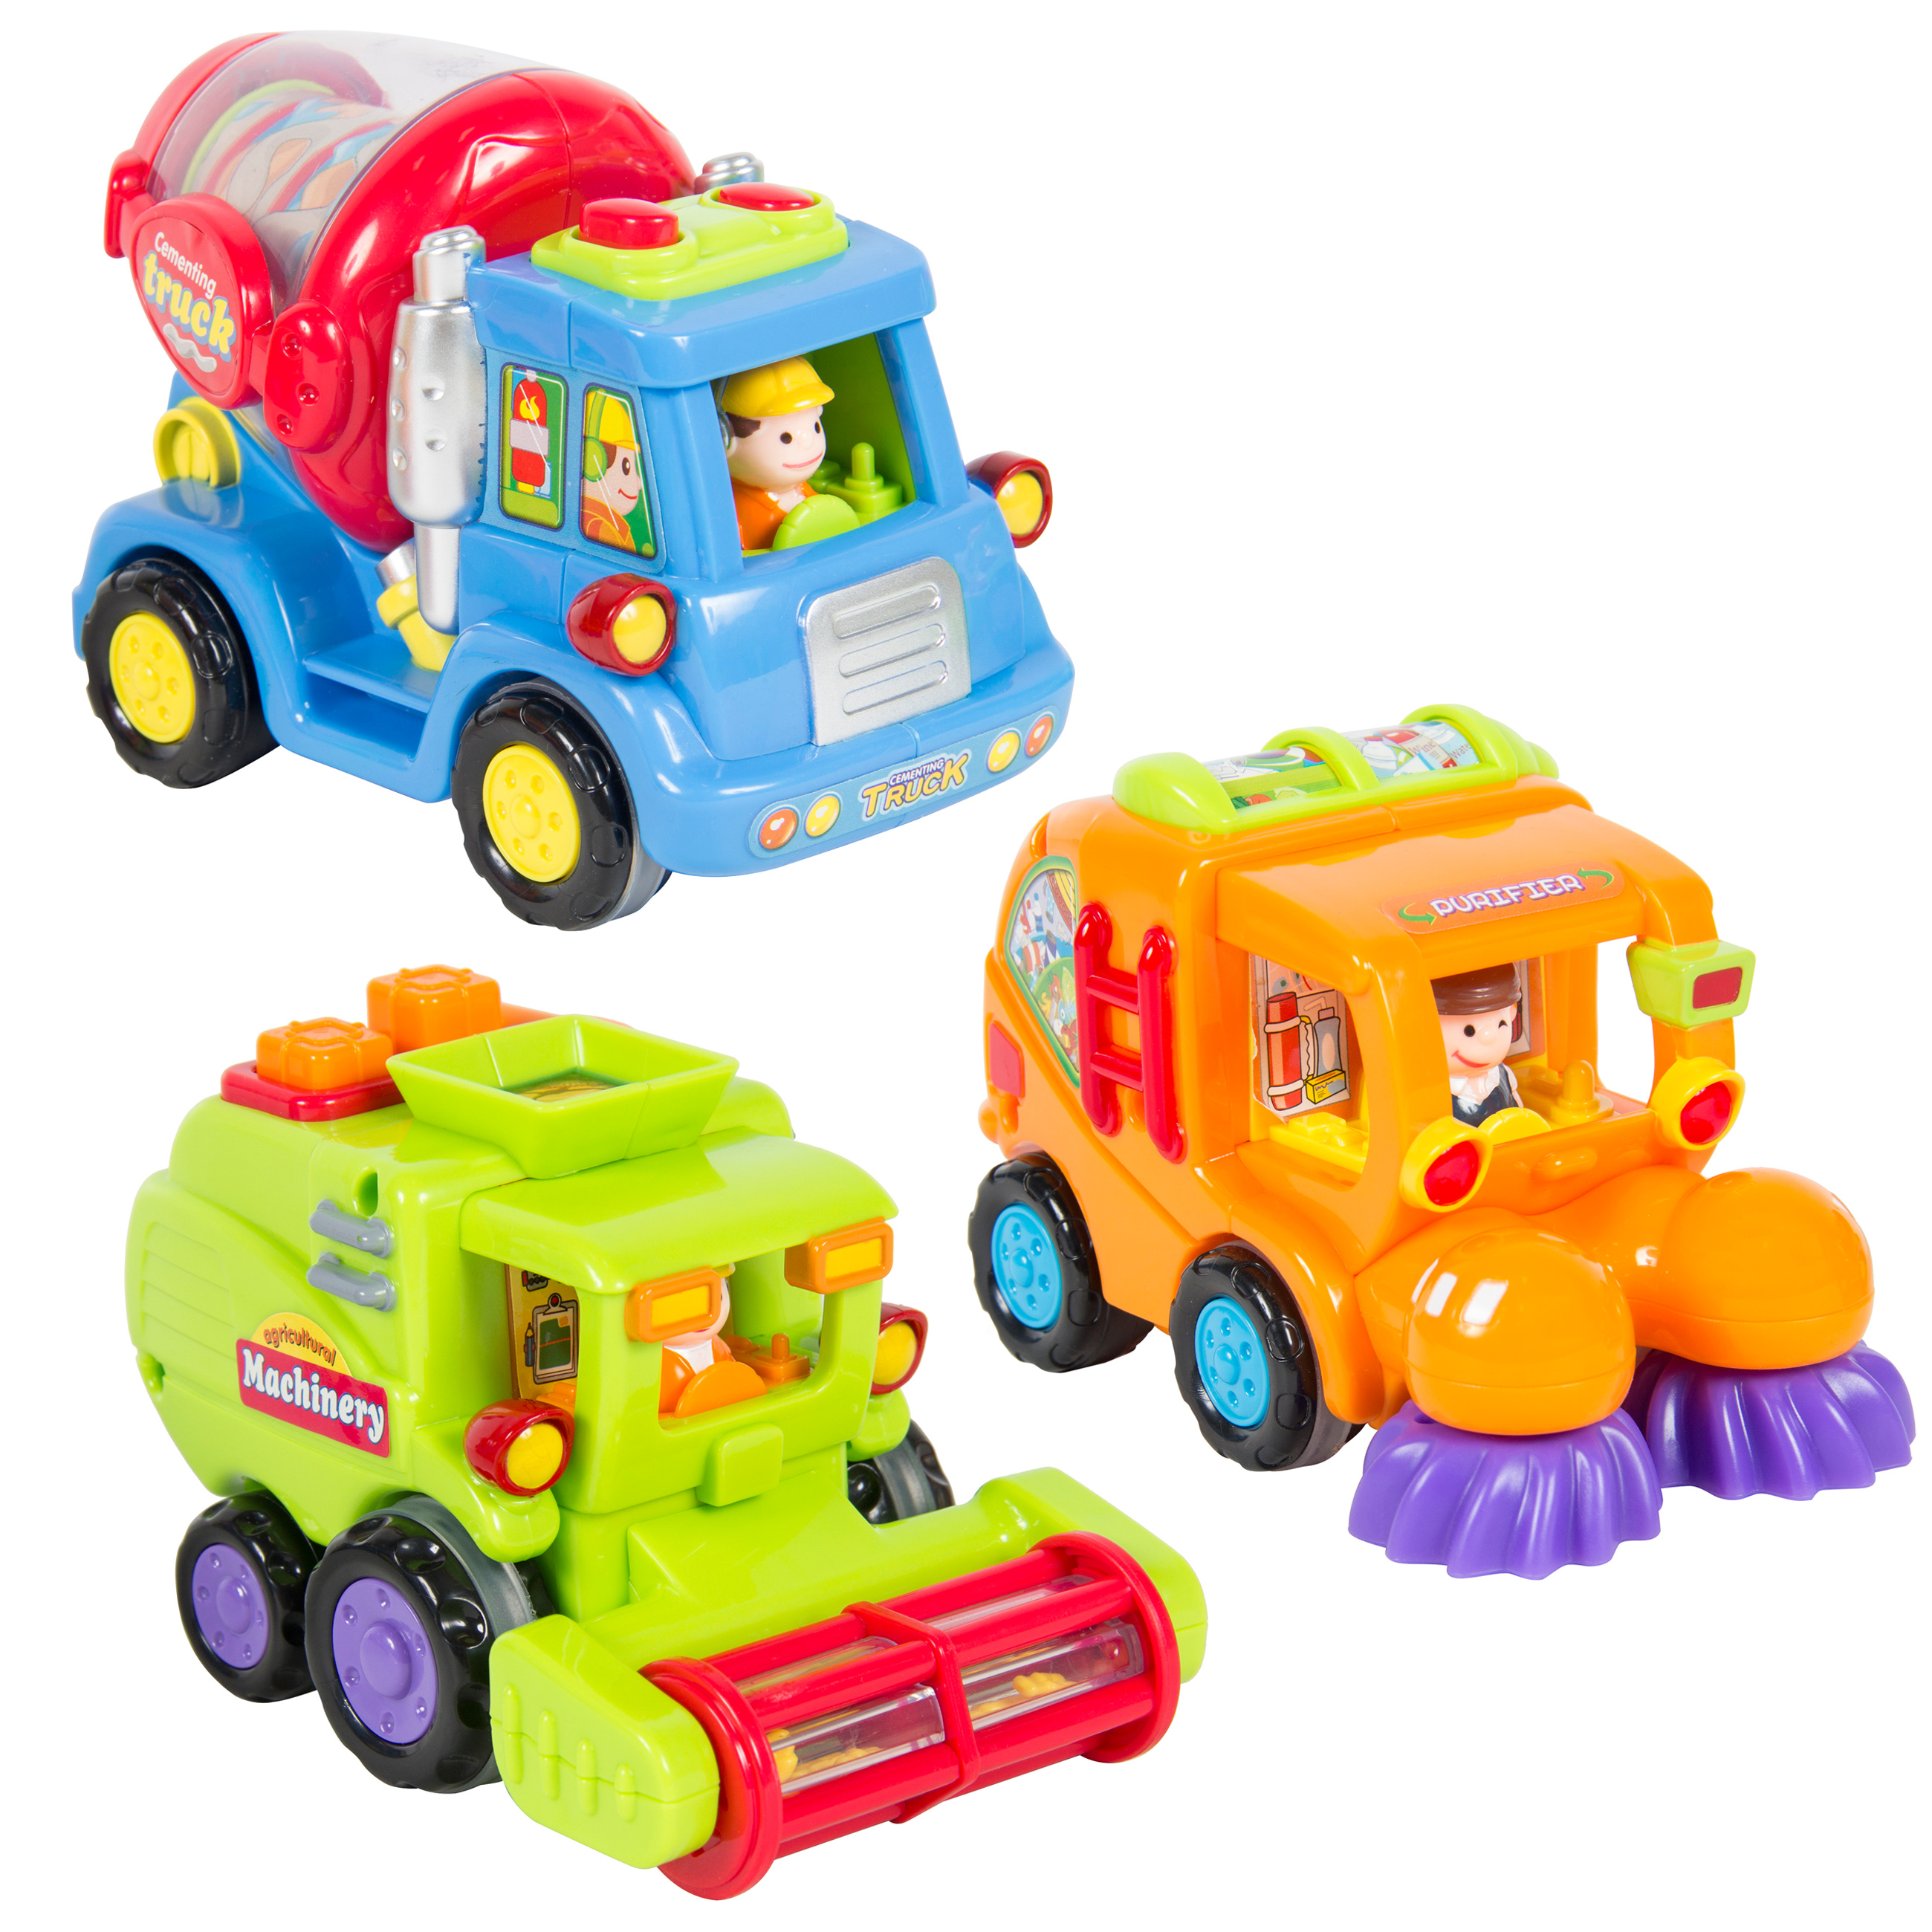 Best Choice Products Set of 3 Push and Go Friction Powered Car Toys, Street Sweeper, Cement Mixer, Harvester... by Best Choice Products